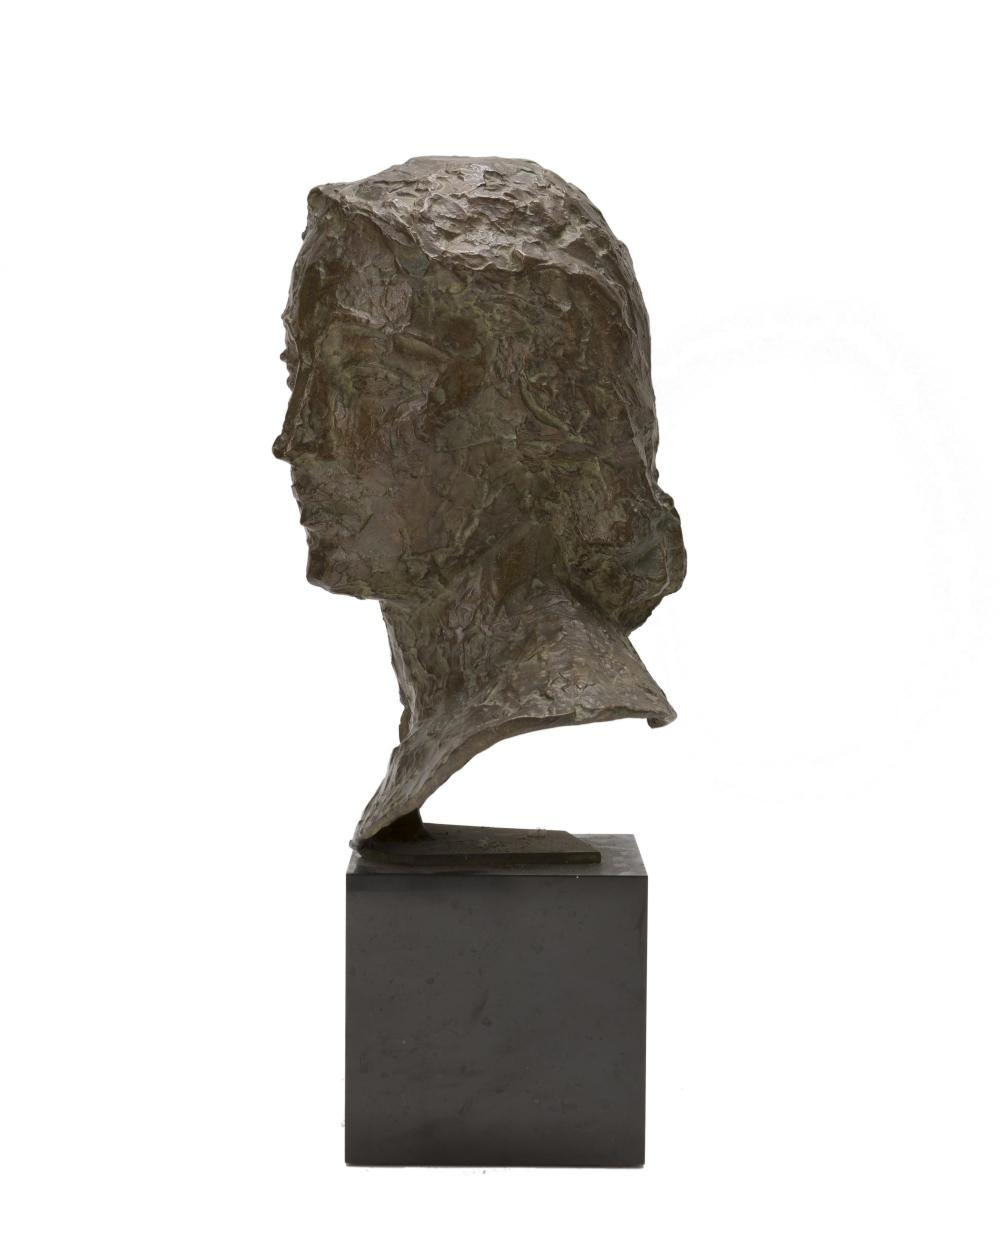 Robert Wlerick, (1882-1944 French), Bust of a woman, Patinated cast bronze on marble plinth, 12.625